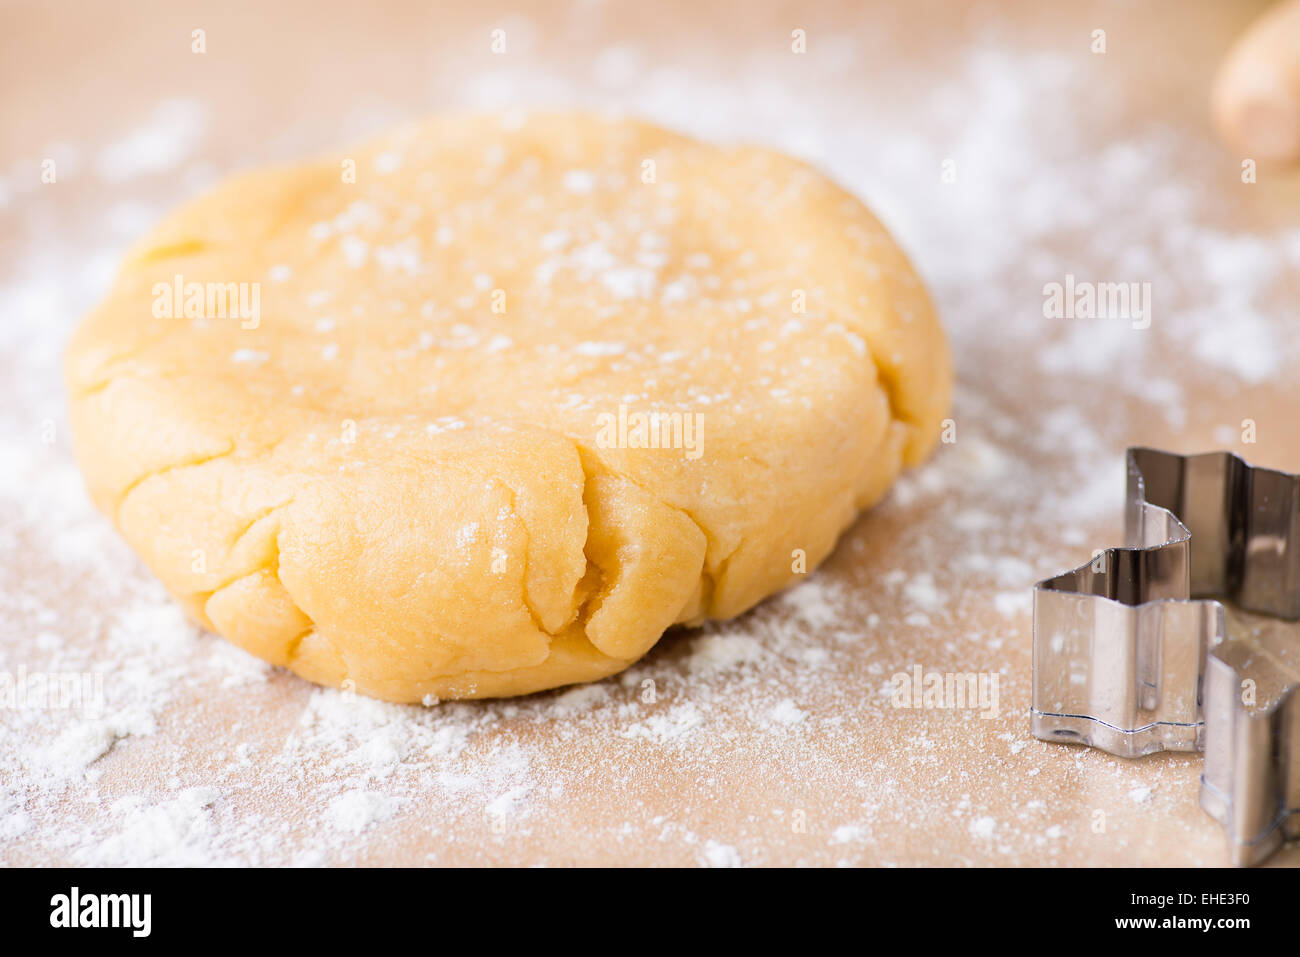 Shortcrust pastry dough, unrolled and unbaked on a floured surface, closeup, selective focus - Stock Image